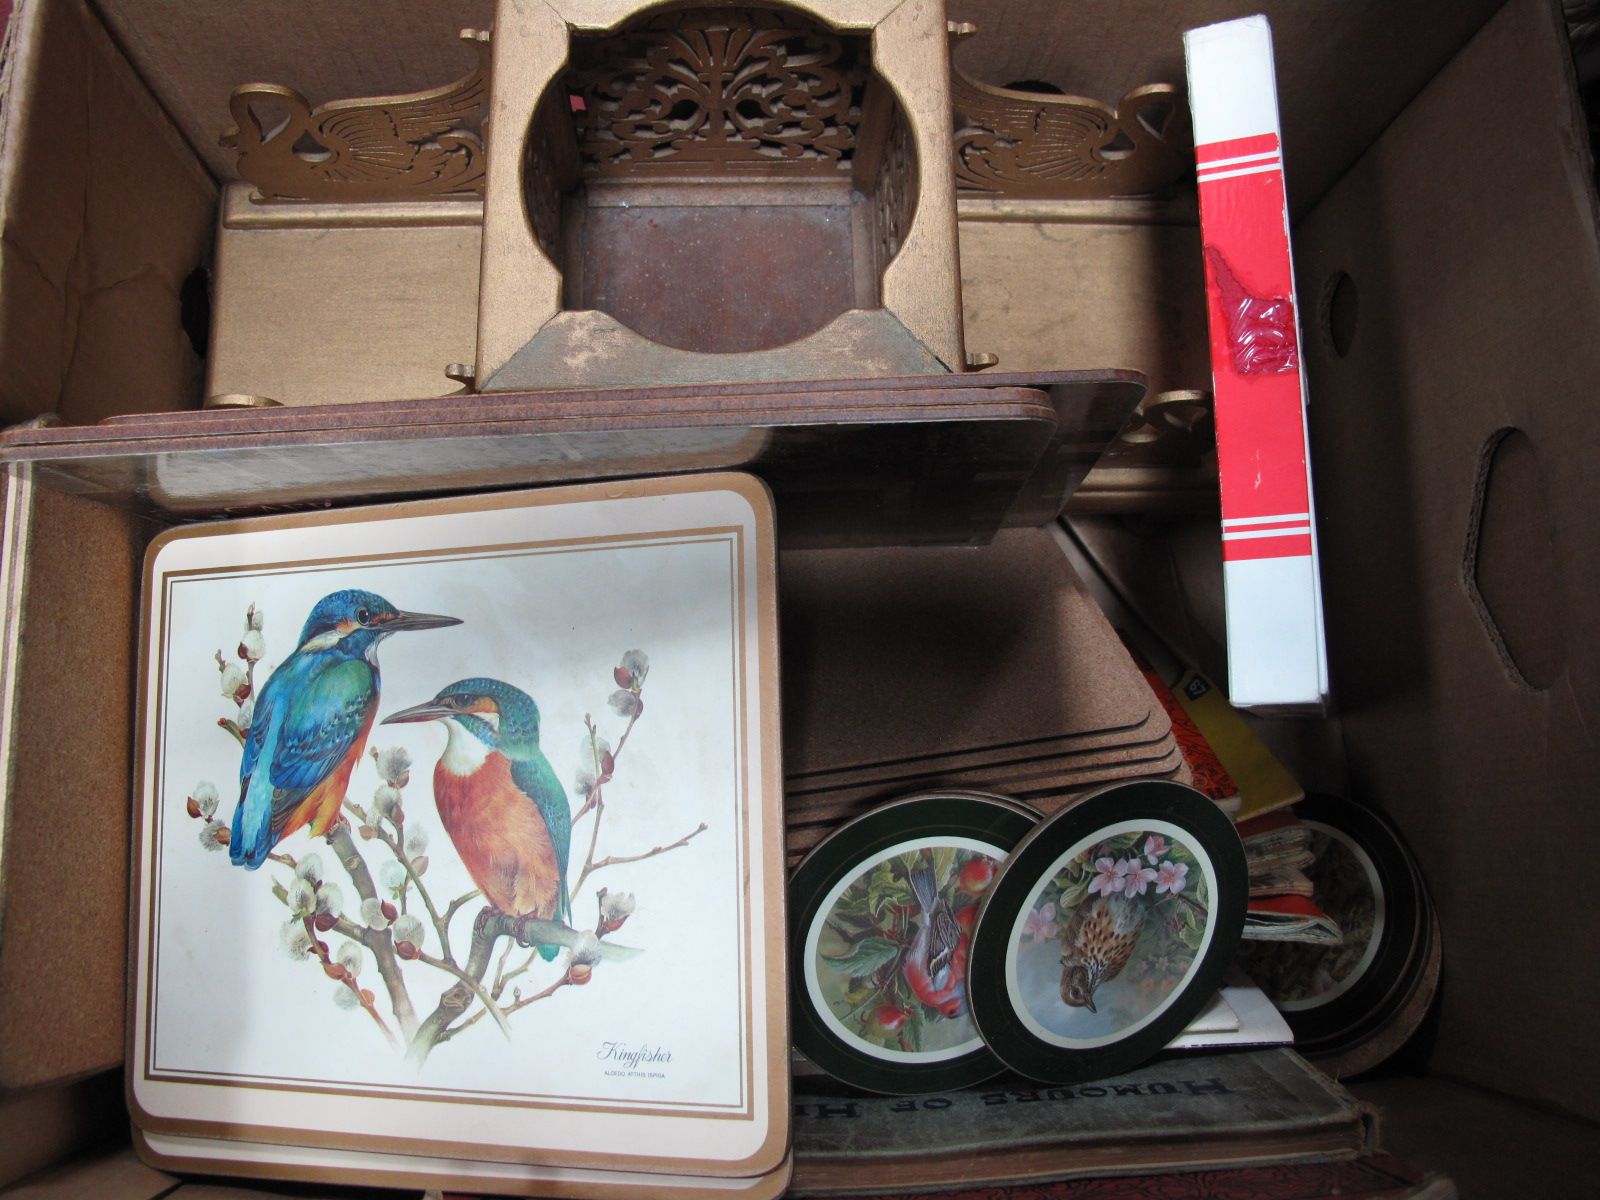 Lot 1019 - Donald Duck and Other Novelty Money Boxes, barometer, Eastern carvings, maps, etc:- Two Boxes